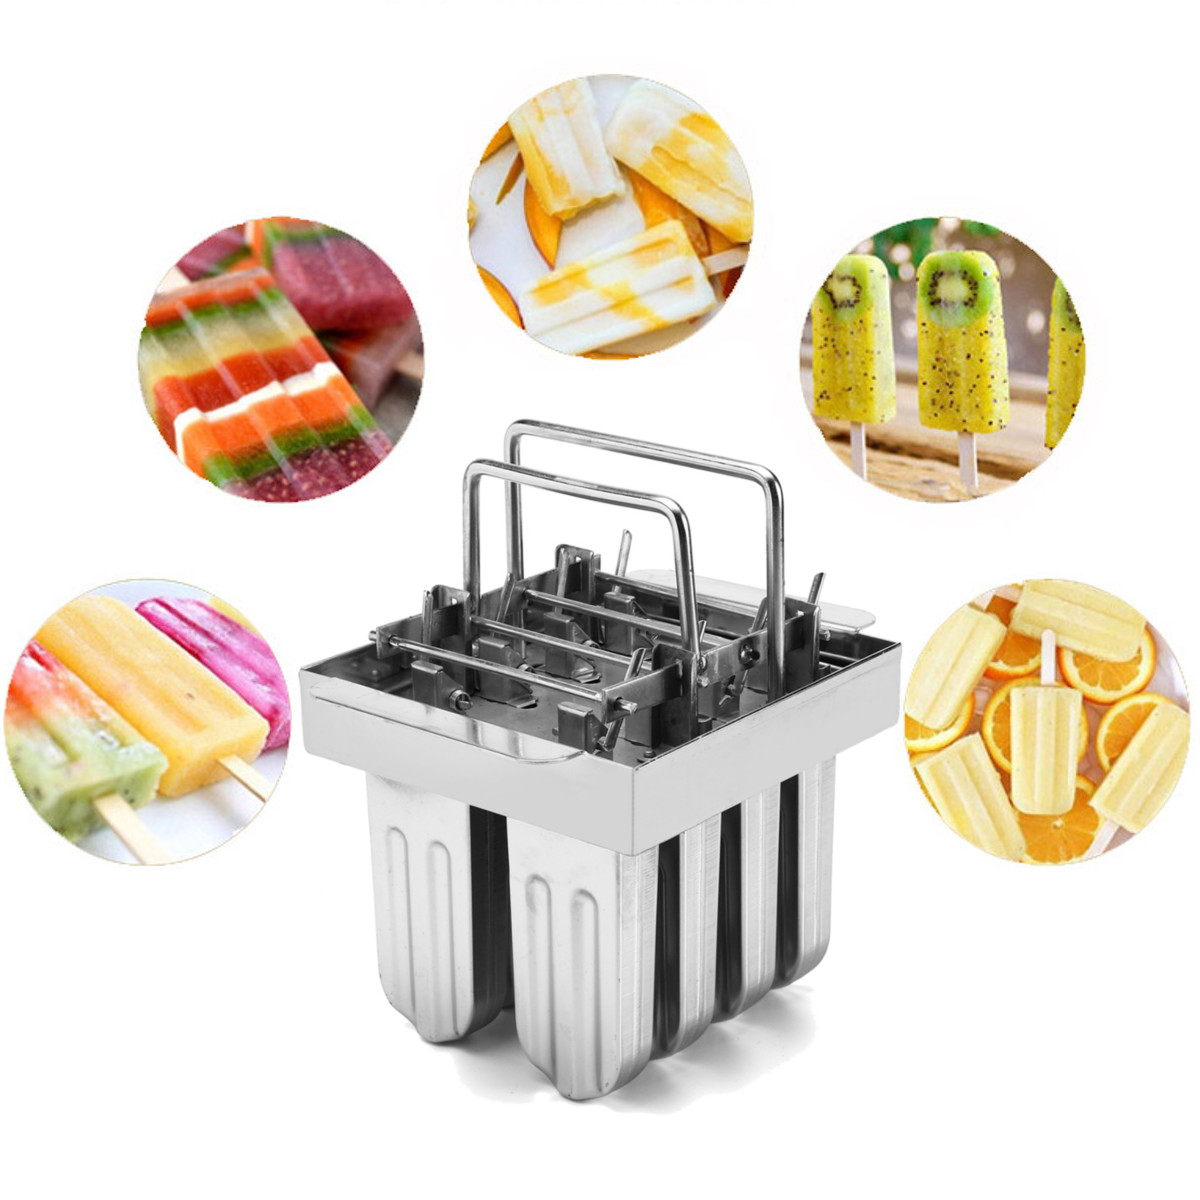 8 Lattice Stainless Steel Molds Ice Pop Maker & Ice Lolly Popsicle Ice Cream Stick Holder,Square & Round head & V-Type